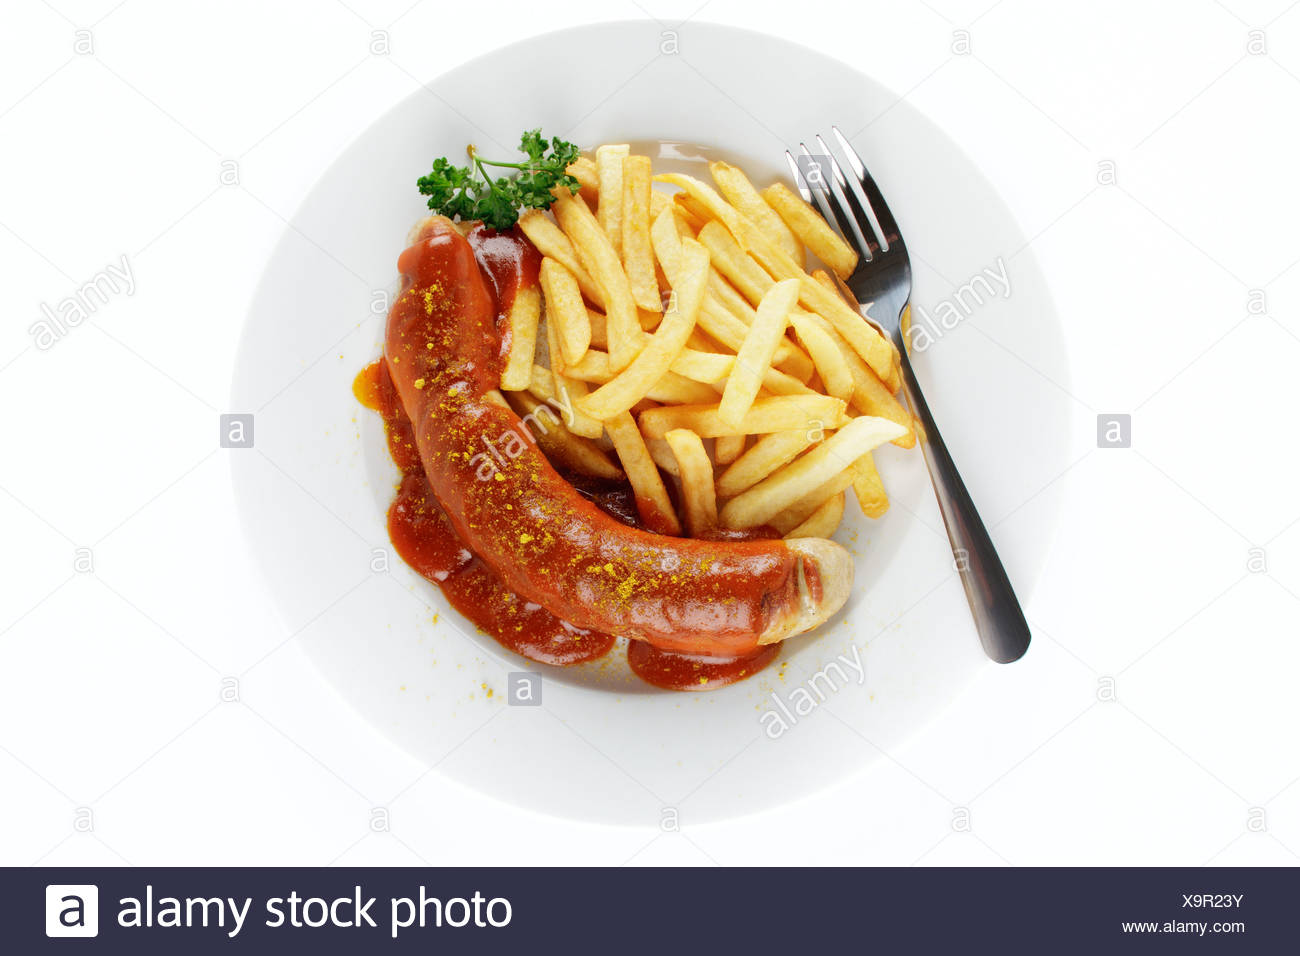 Sausage in curry sauce with French fries - Stock Image